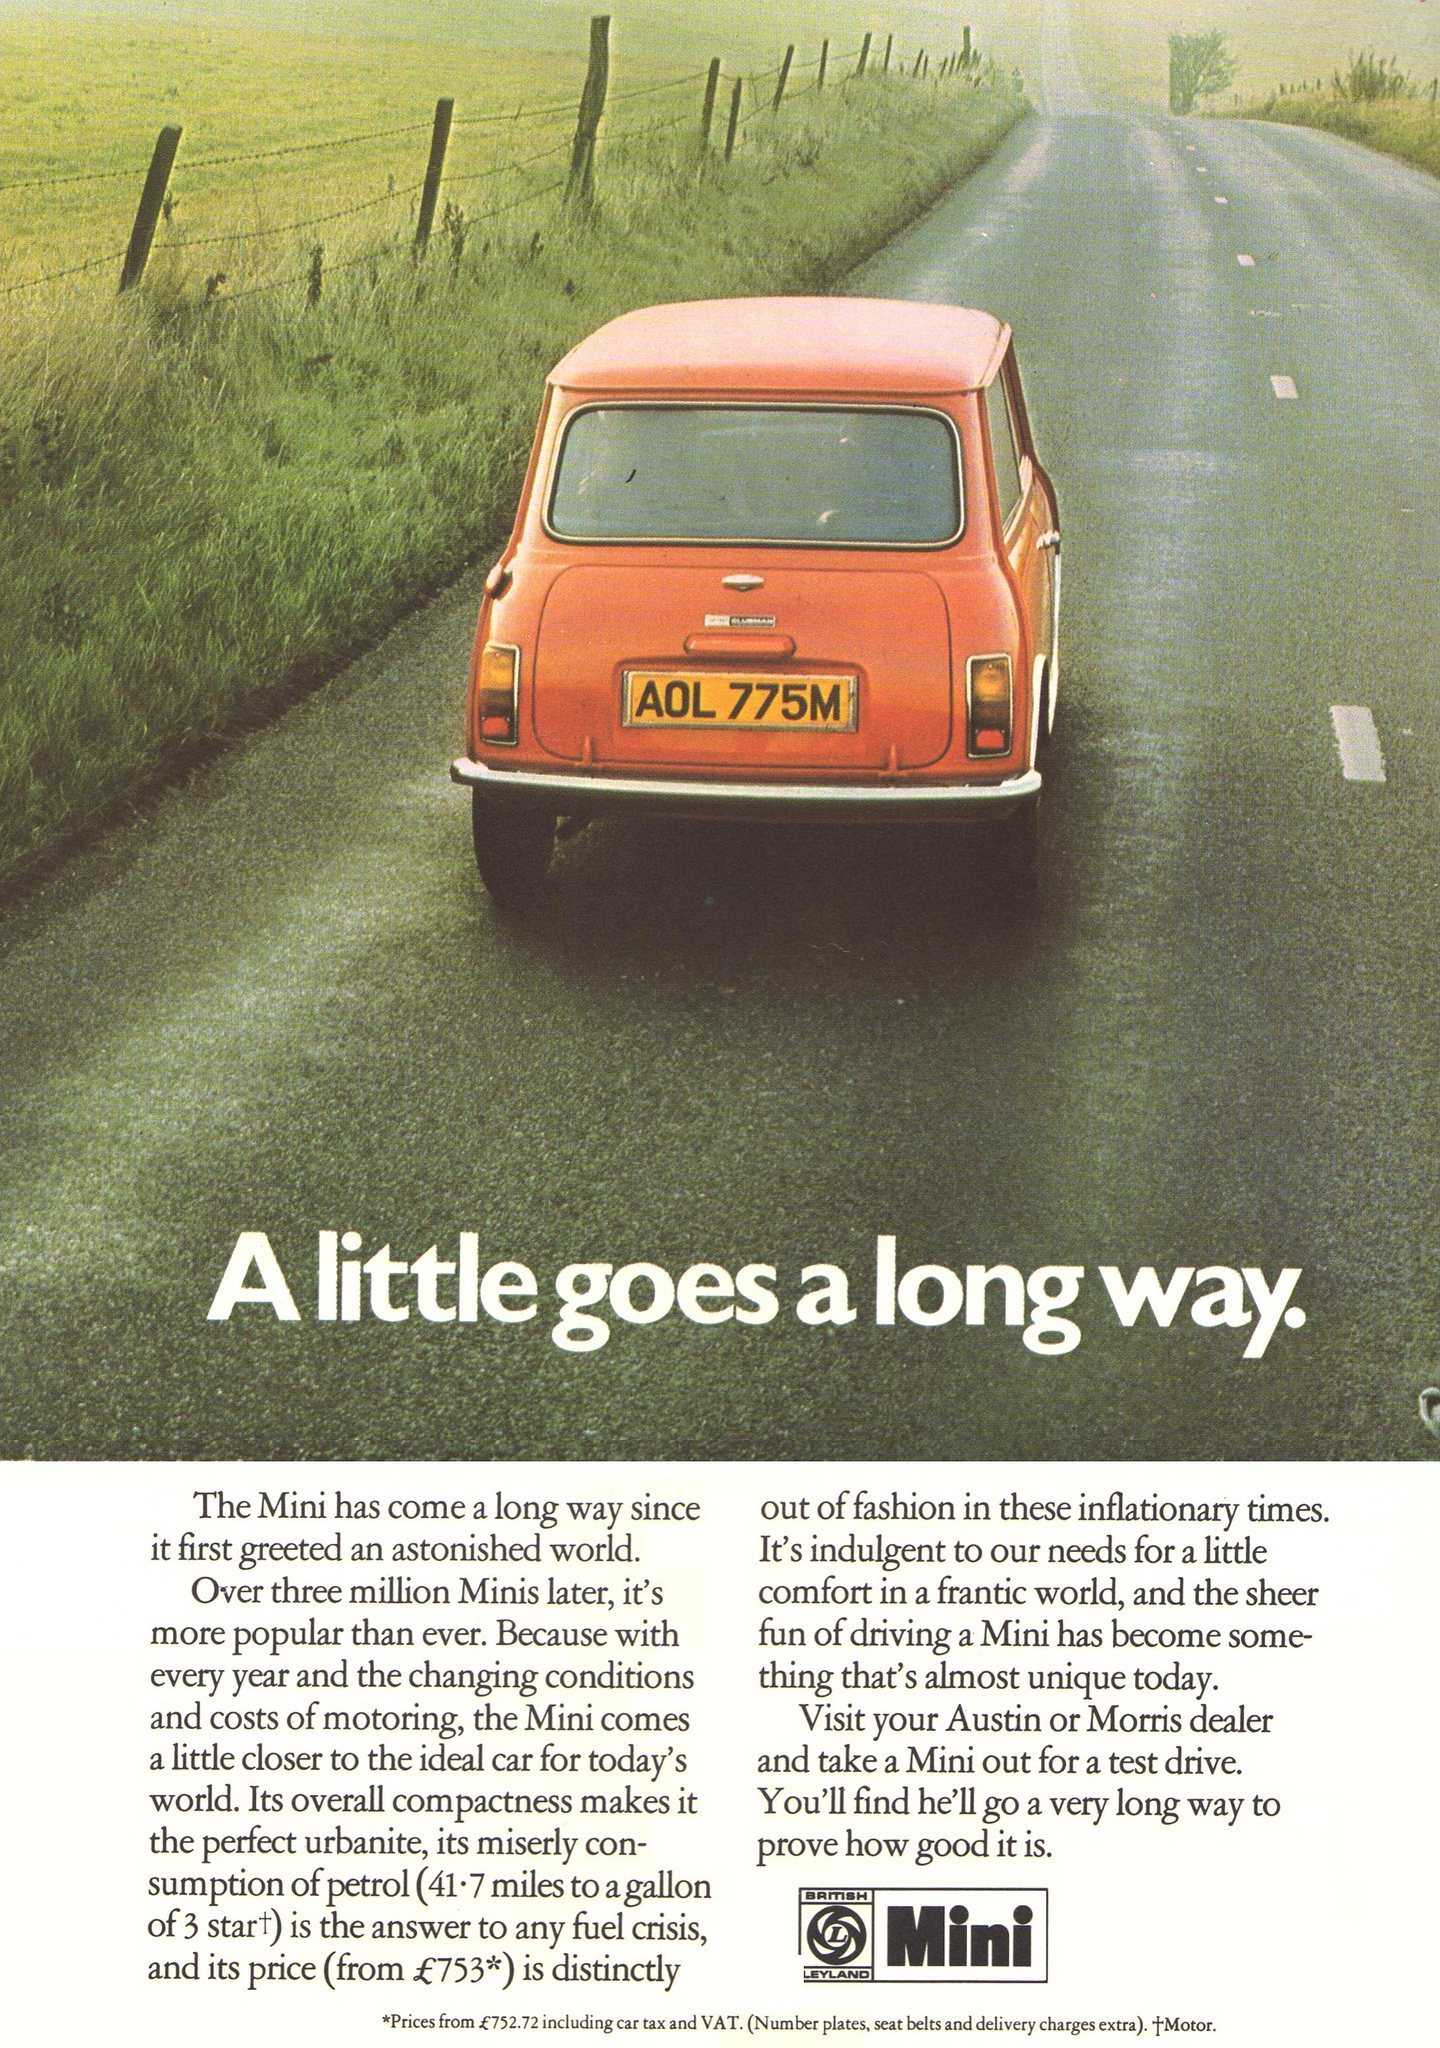 Leyland Mini advertising advert